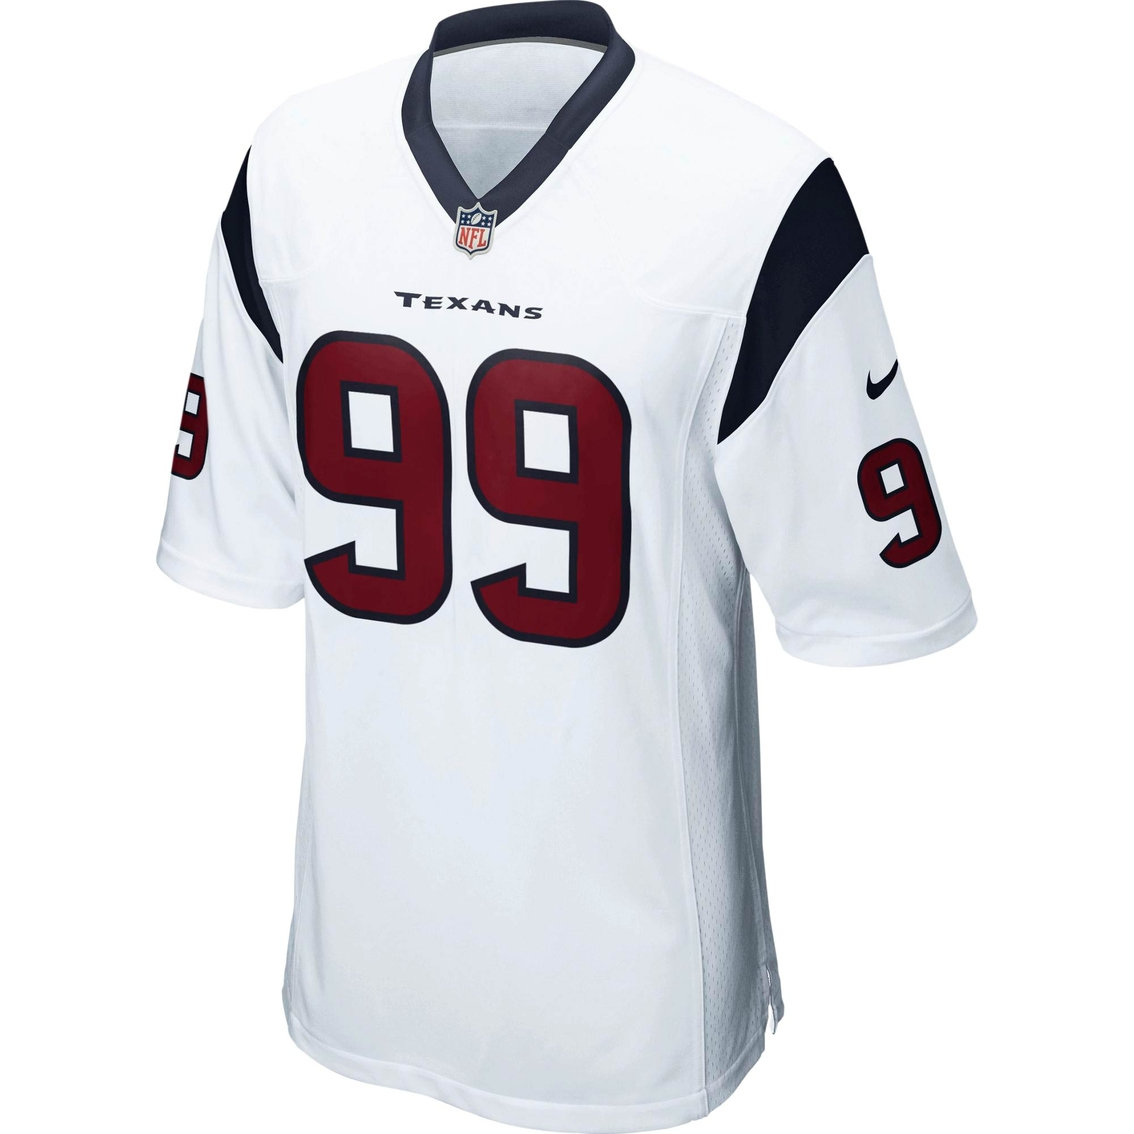 Nike Nfl Houston Texans Men s Jj Watt White Game Jersey  918c51287